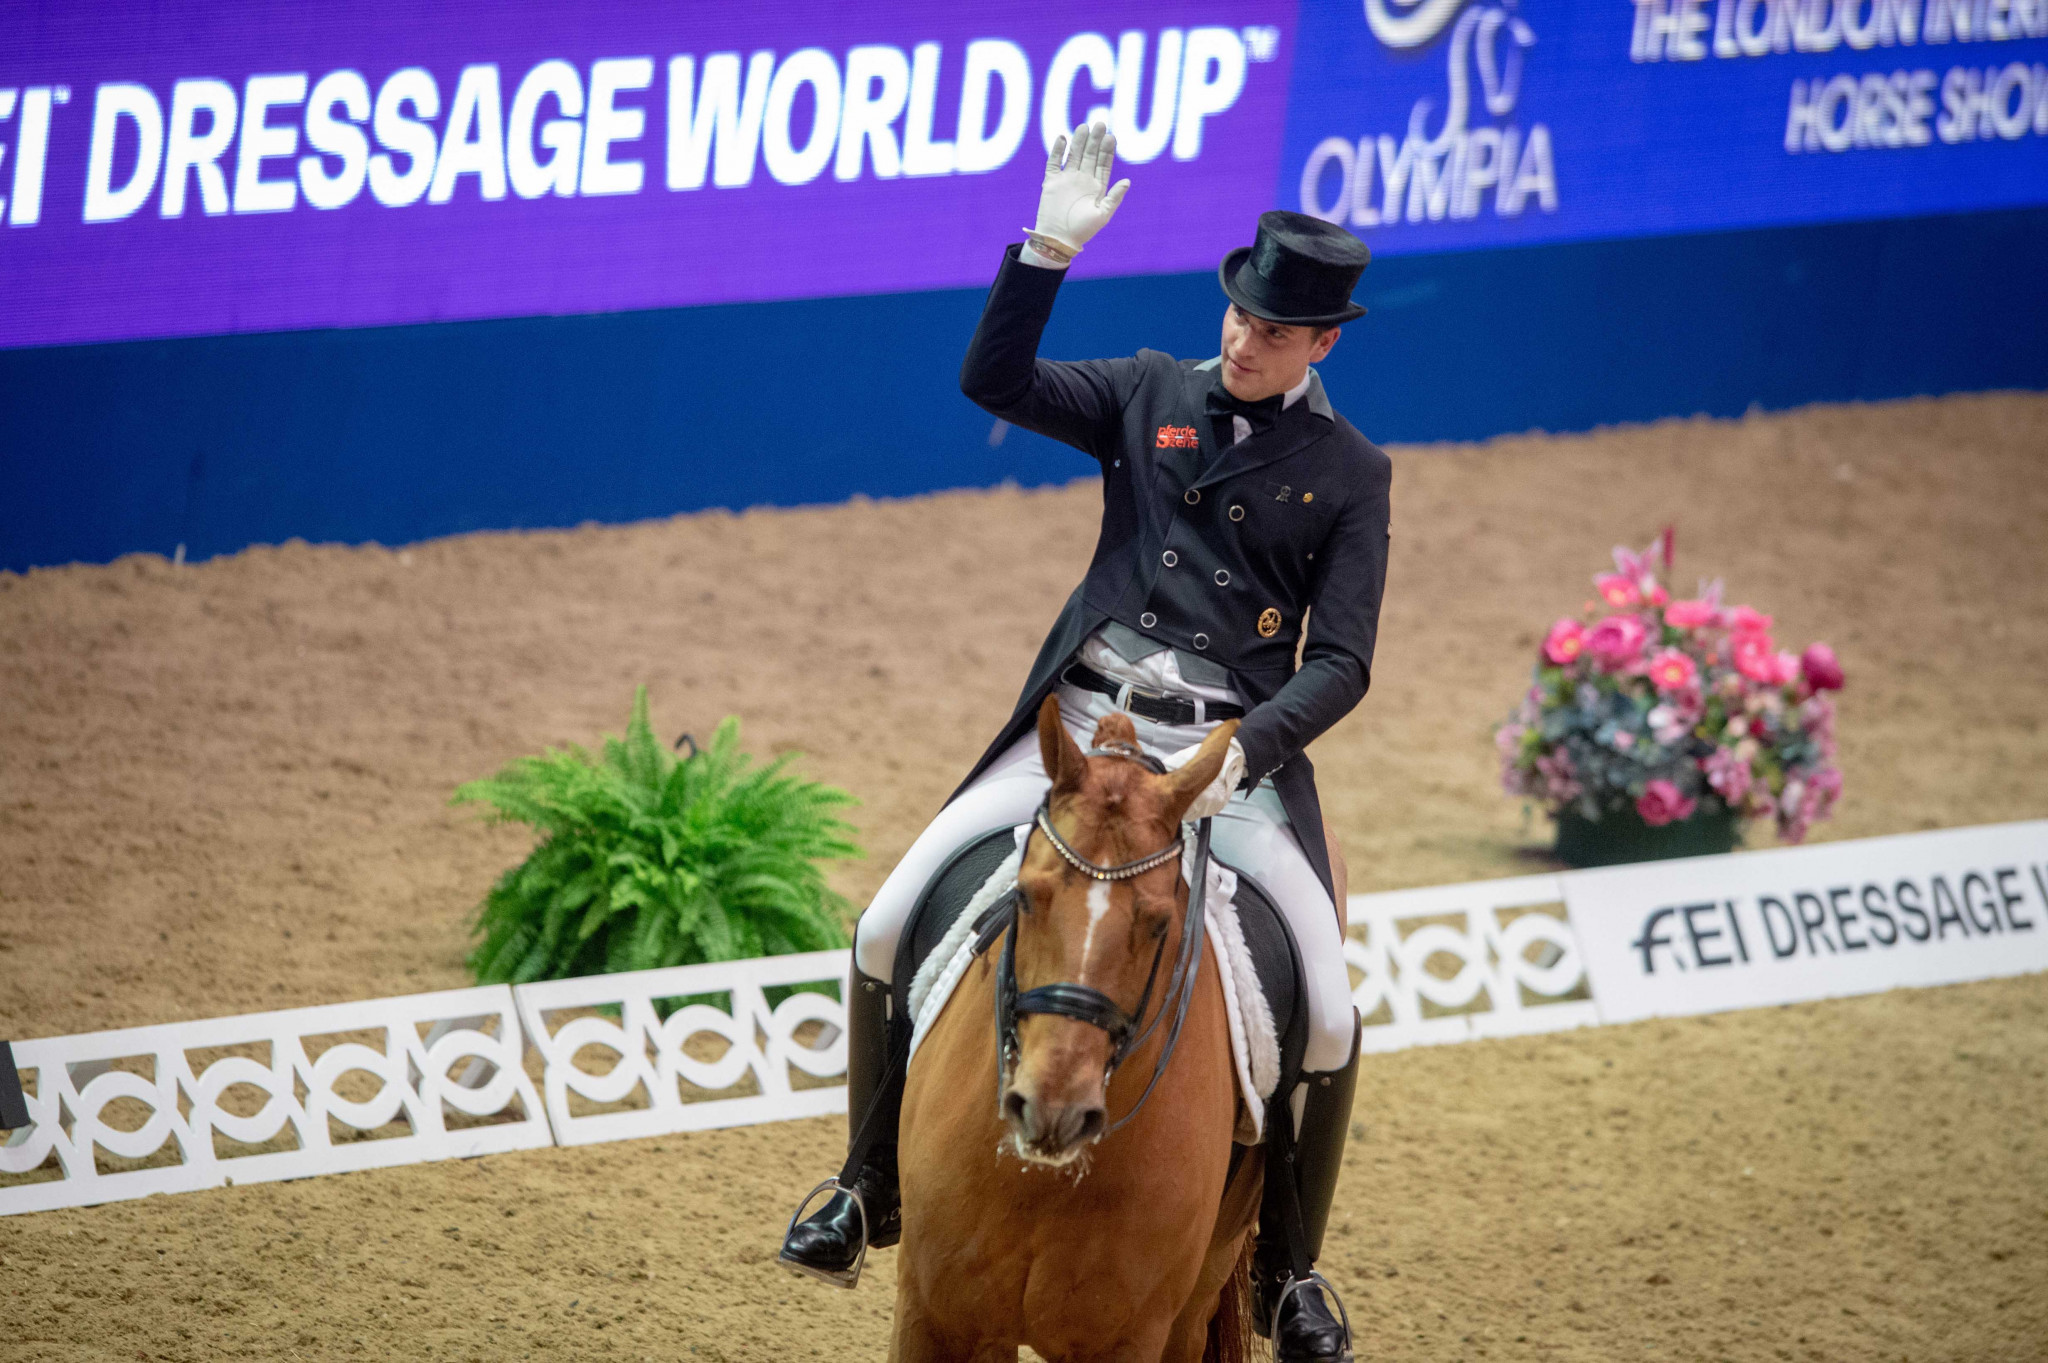 Wandres pips home hero Dujardin at Dressage World Cup in London